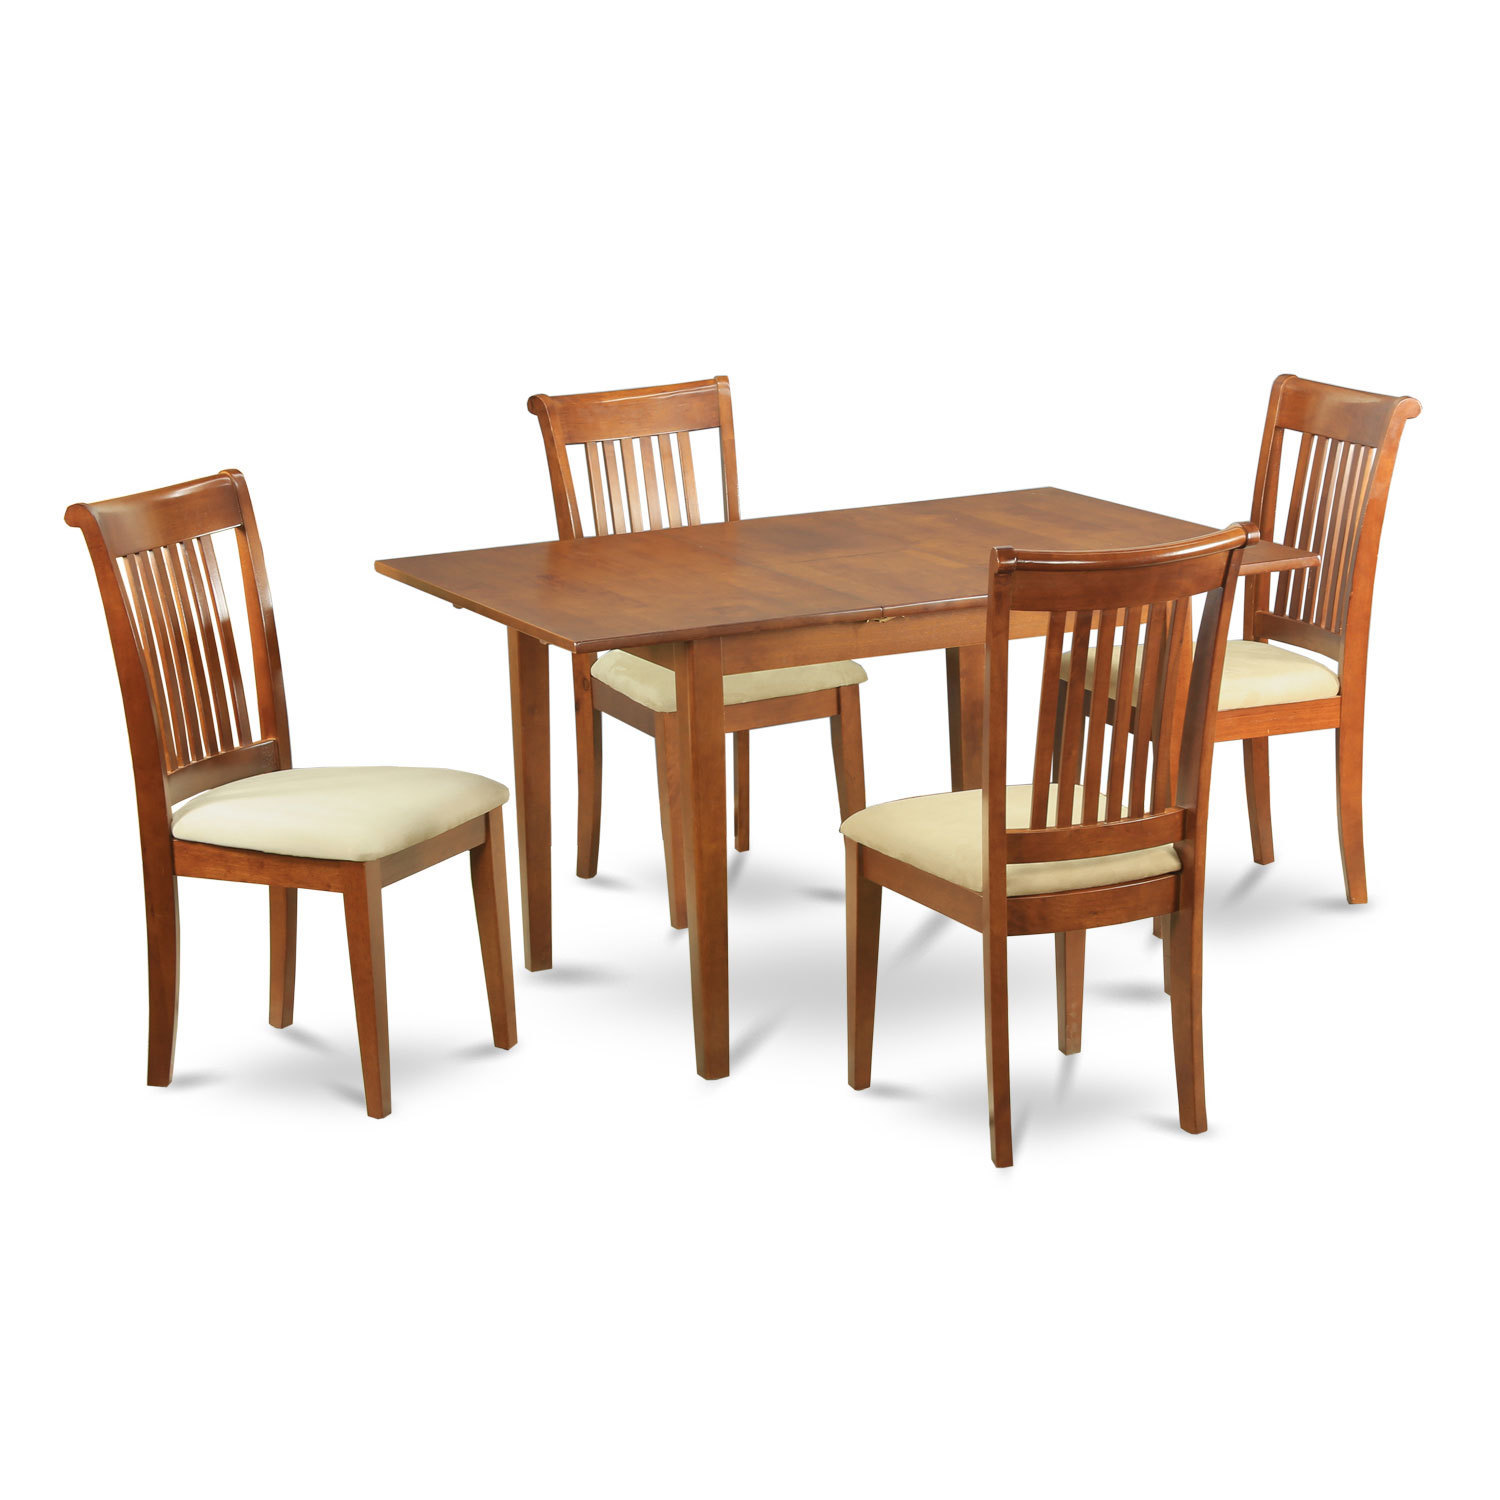 Small dinette set design homesfeed for Small dinette sets